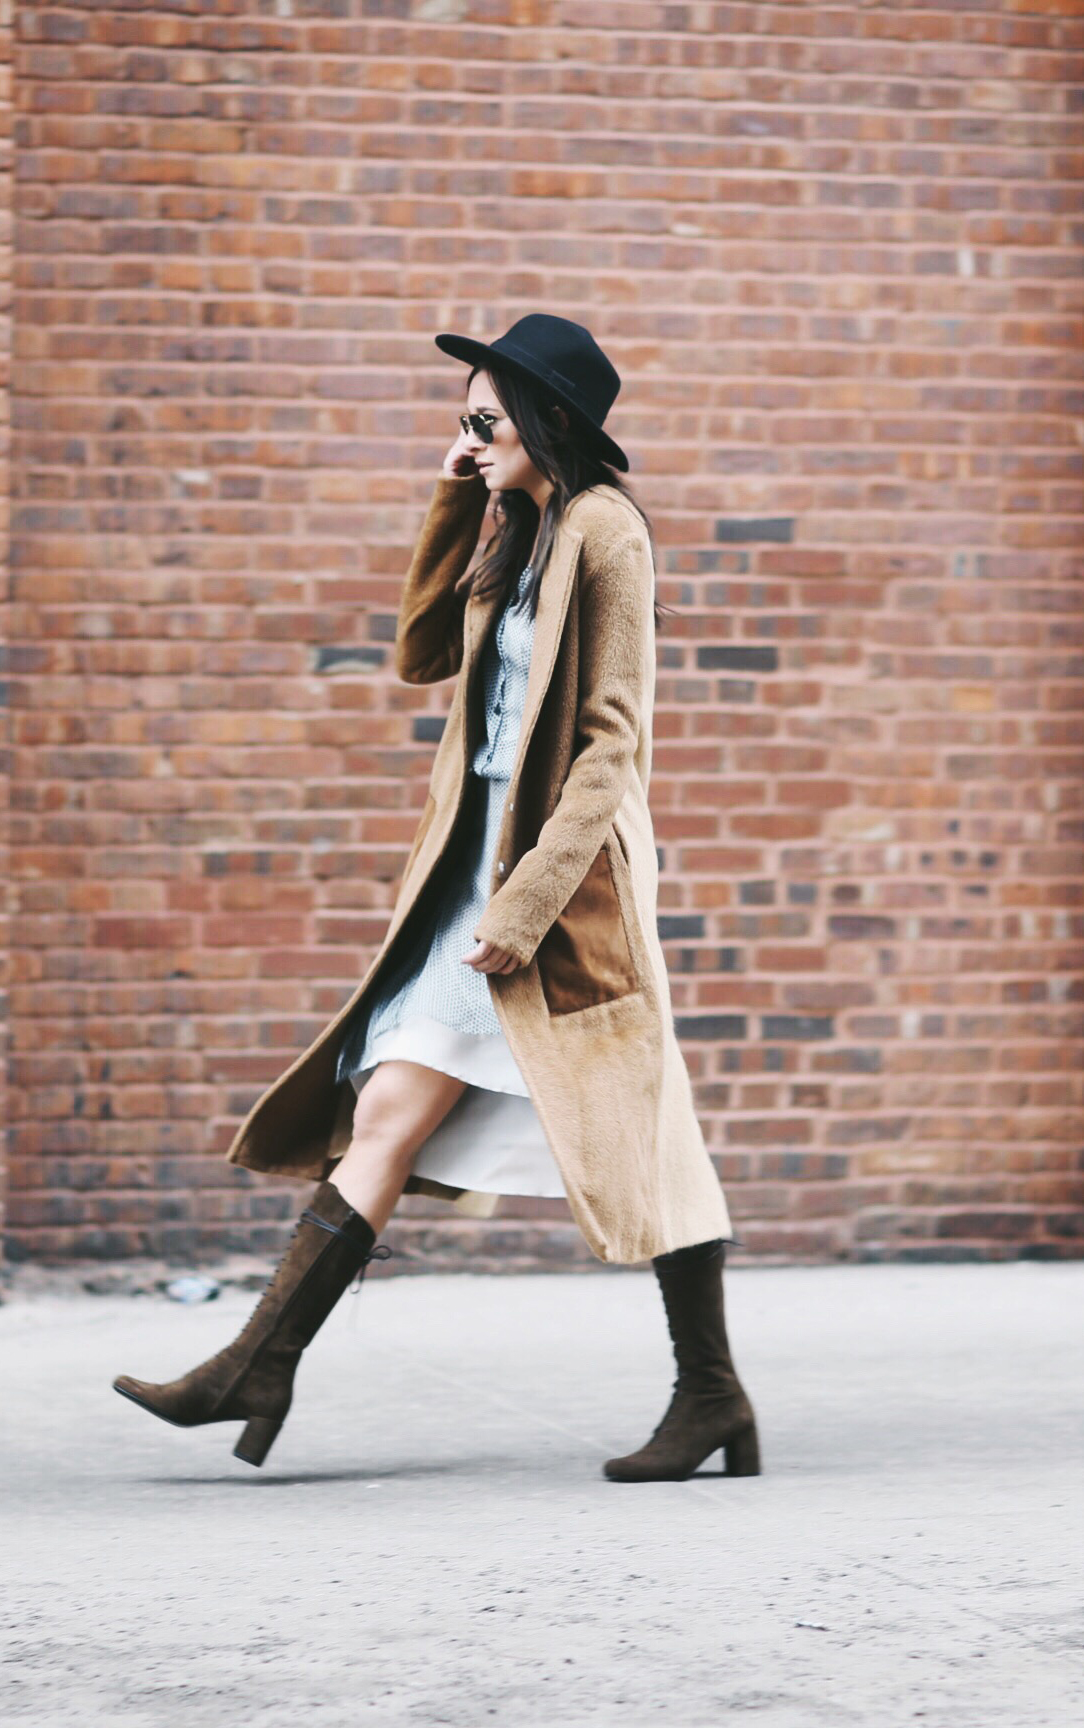 Street Style February 2015: Danielle Bernstein is wearing a white dress from Mulberry, camel coat from Edun and the boots are from Saint Laurent